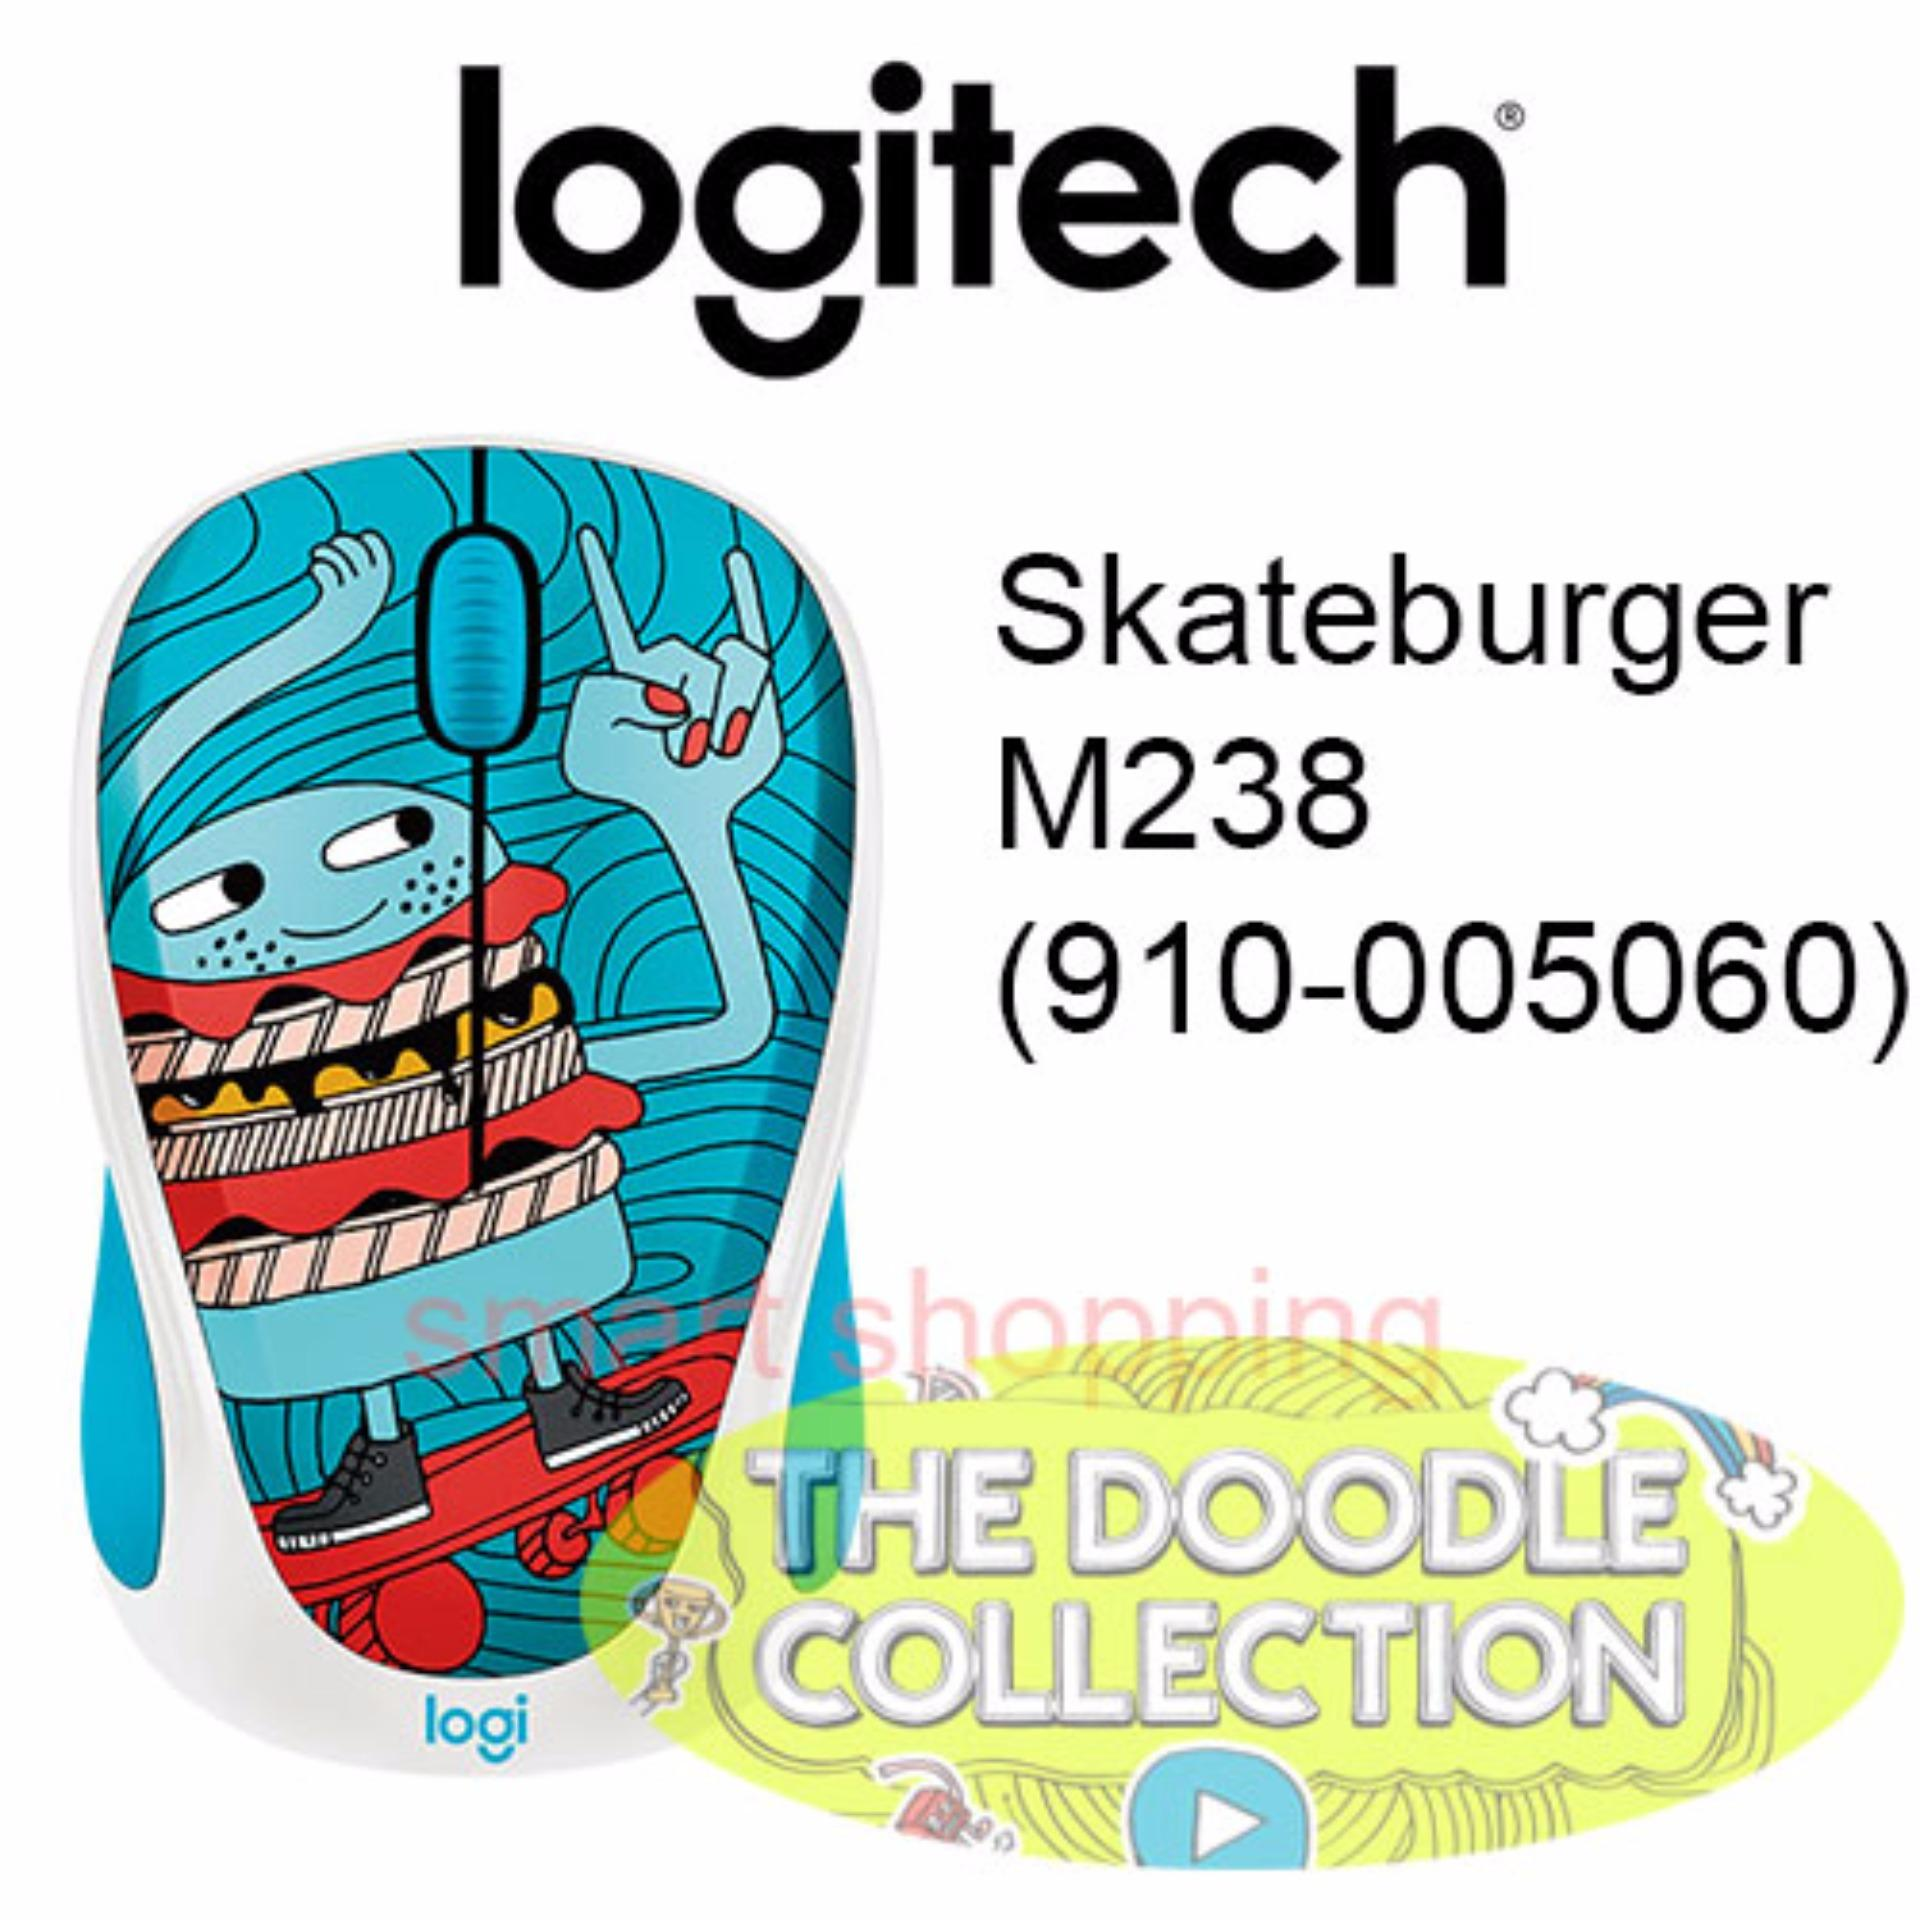 Logitech Wireless Mouse Doodle Collection M238 Skateburger Daftar Party L070 Skate Burger Pn 910 005060 Singapore